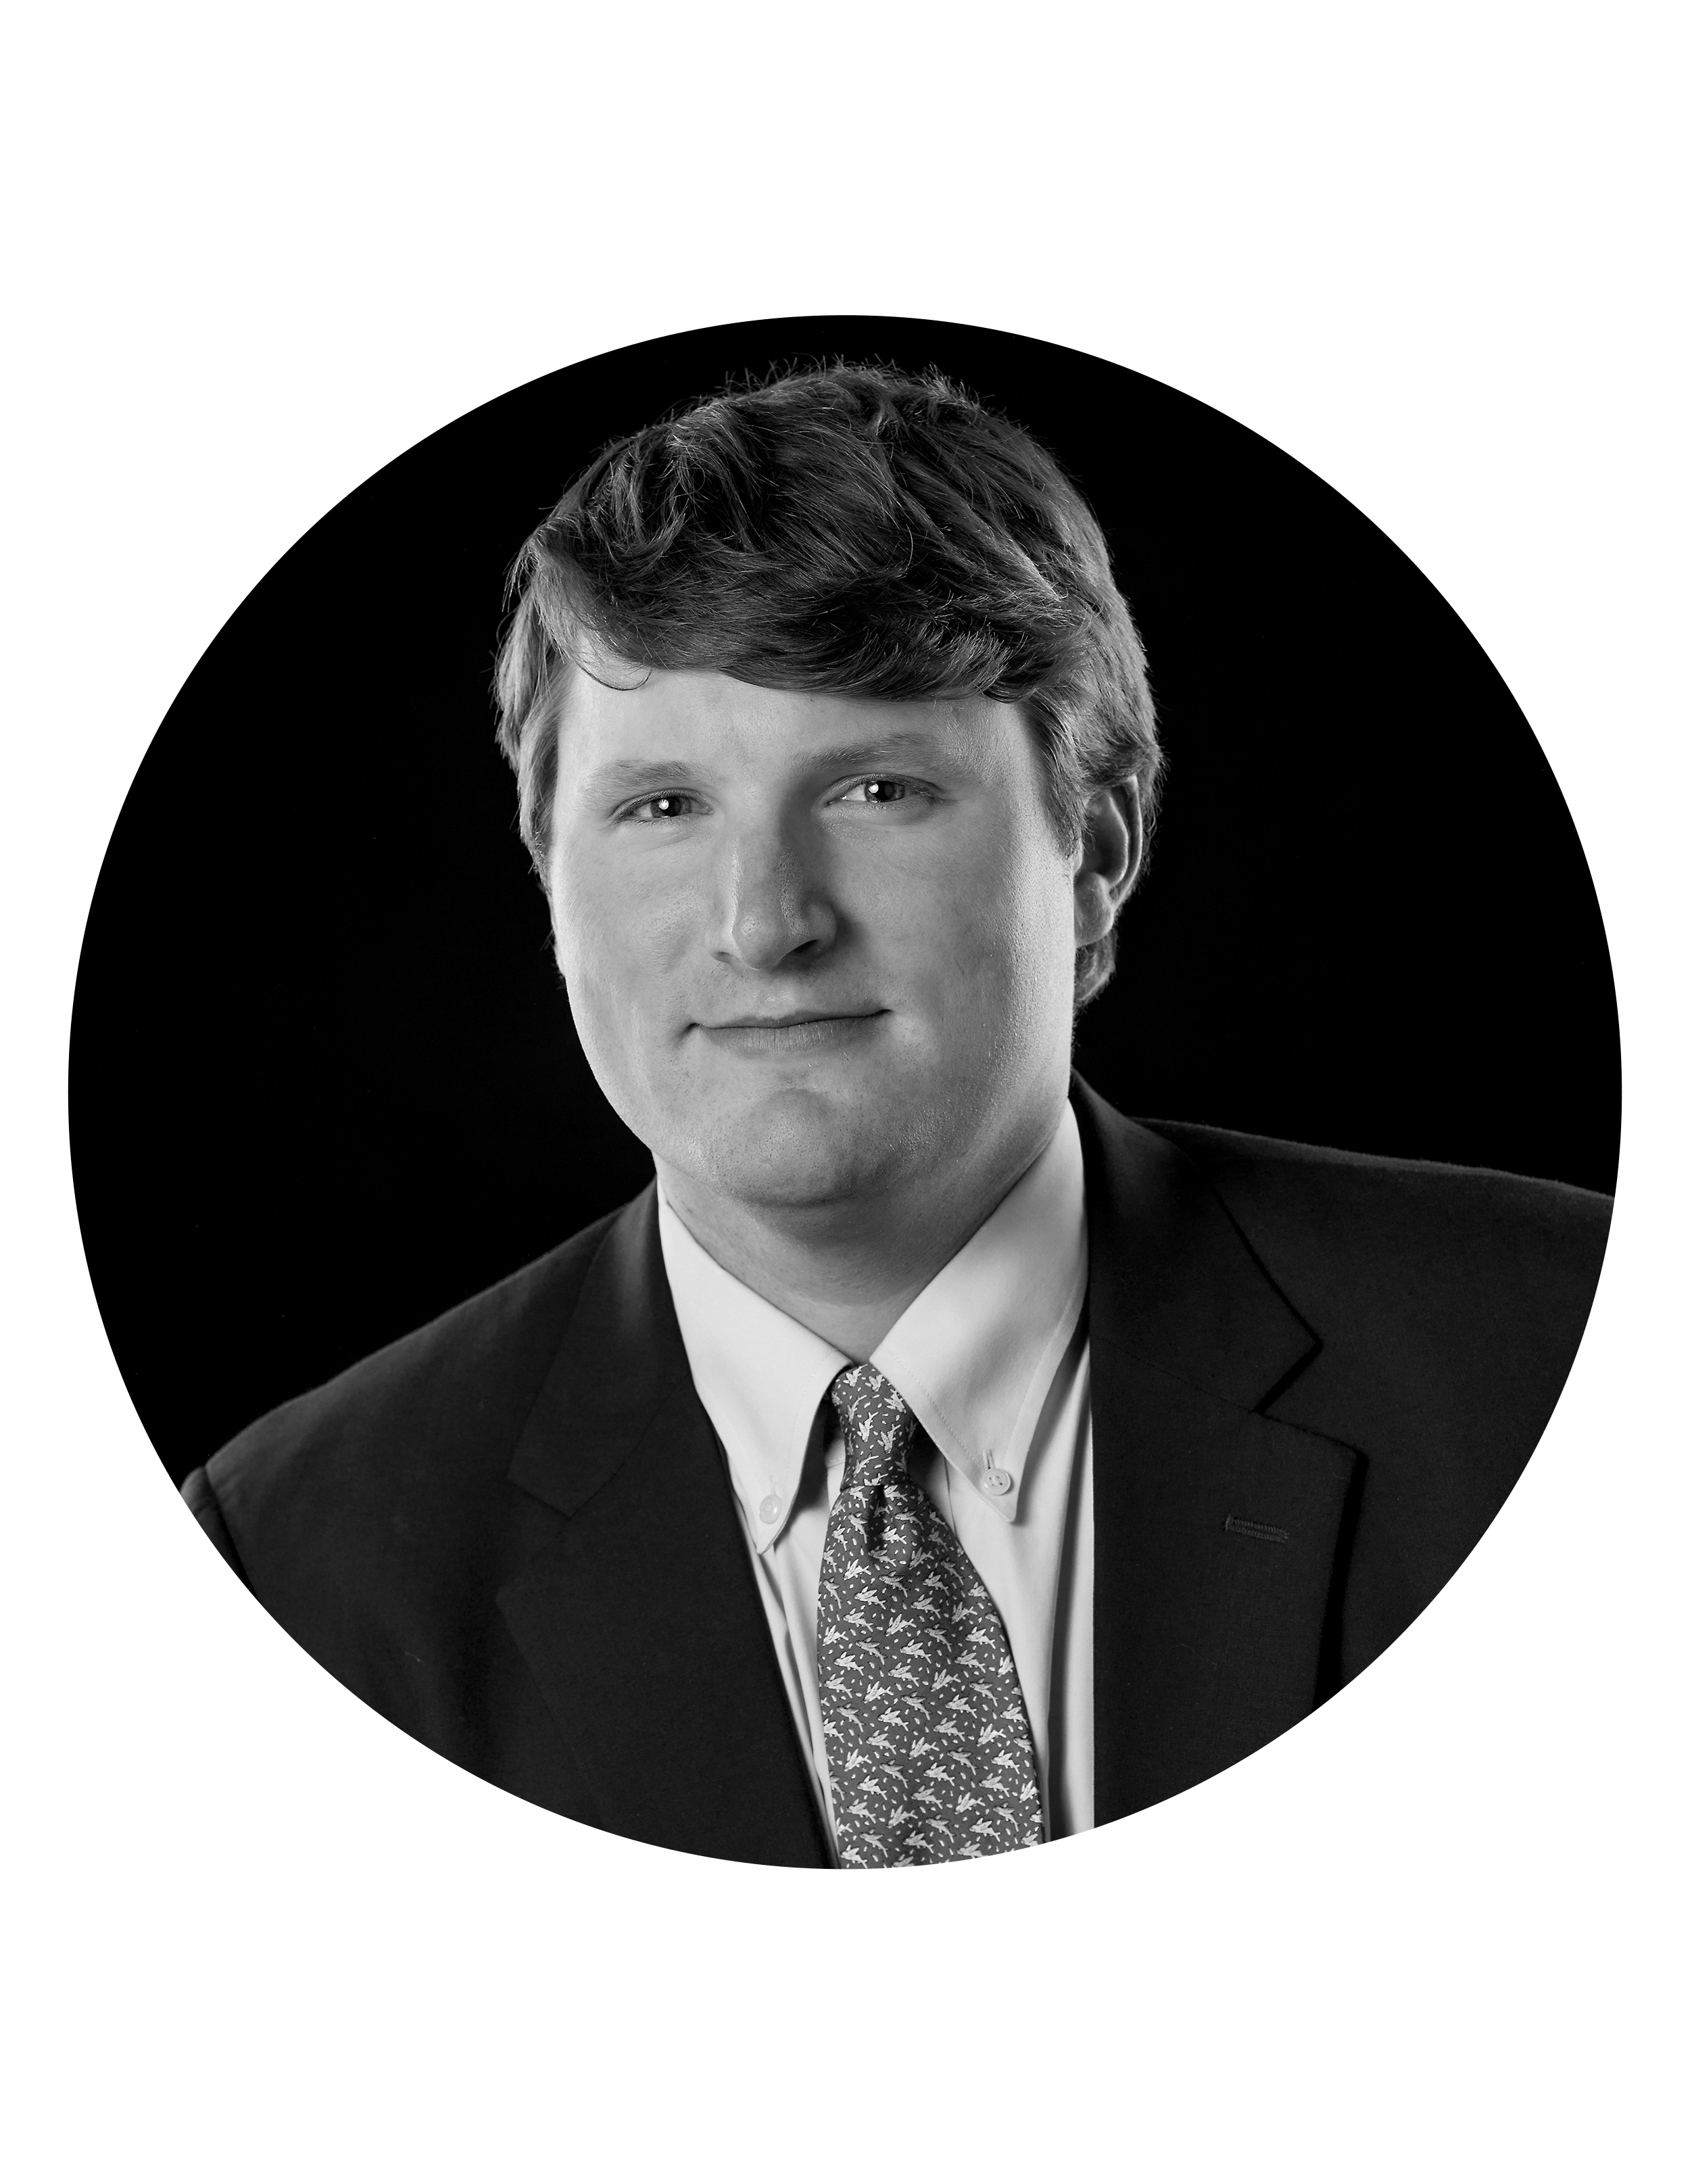 Garrett Vaughan - VICE PRESIDENTGarrett brings his sales skills and experiences from the orthopedic device industry where he served as a Senior Sales Representative. He comes to Varia with his wife Paige and two daughters Evie and Annie Afton. Garrett enjoys fly fishing, Ole Miss football, and spending time with his family and church.